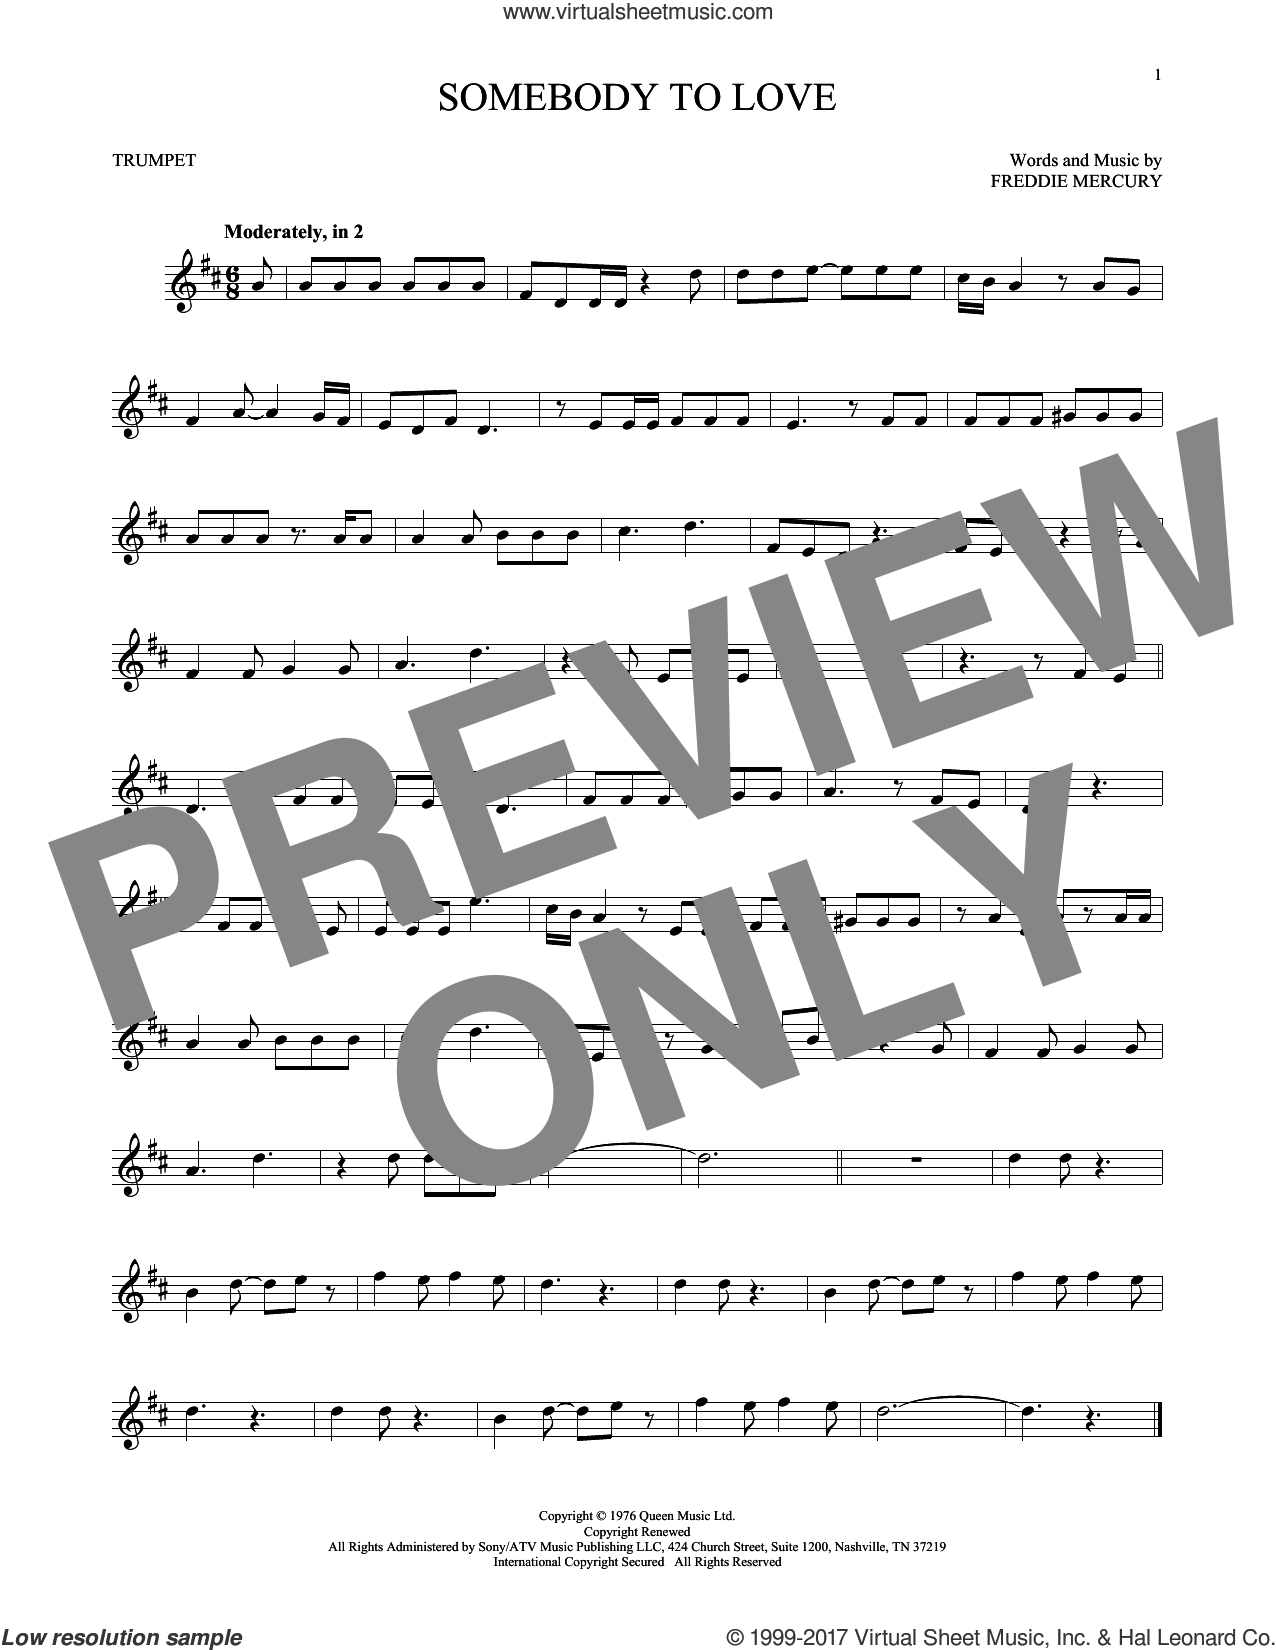 Somebody To Love sheet music for trumpet solo by Queen and Freddie Mercury, intermediate skill level